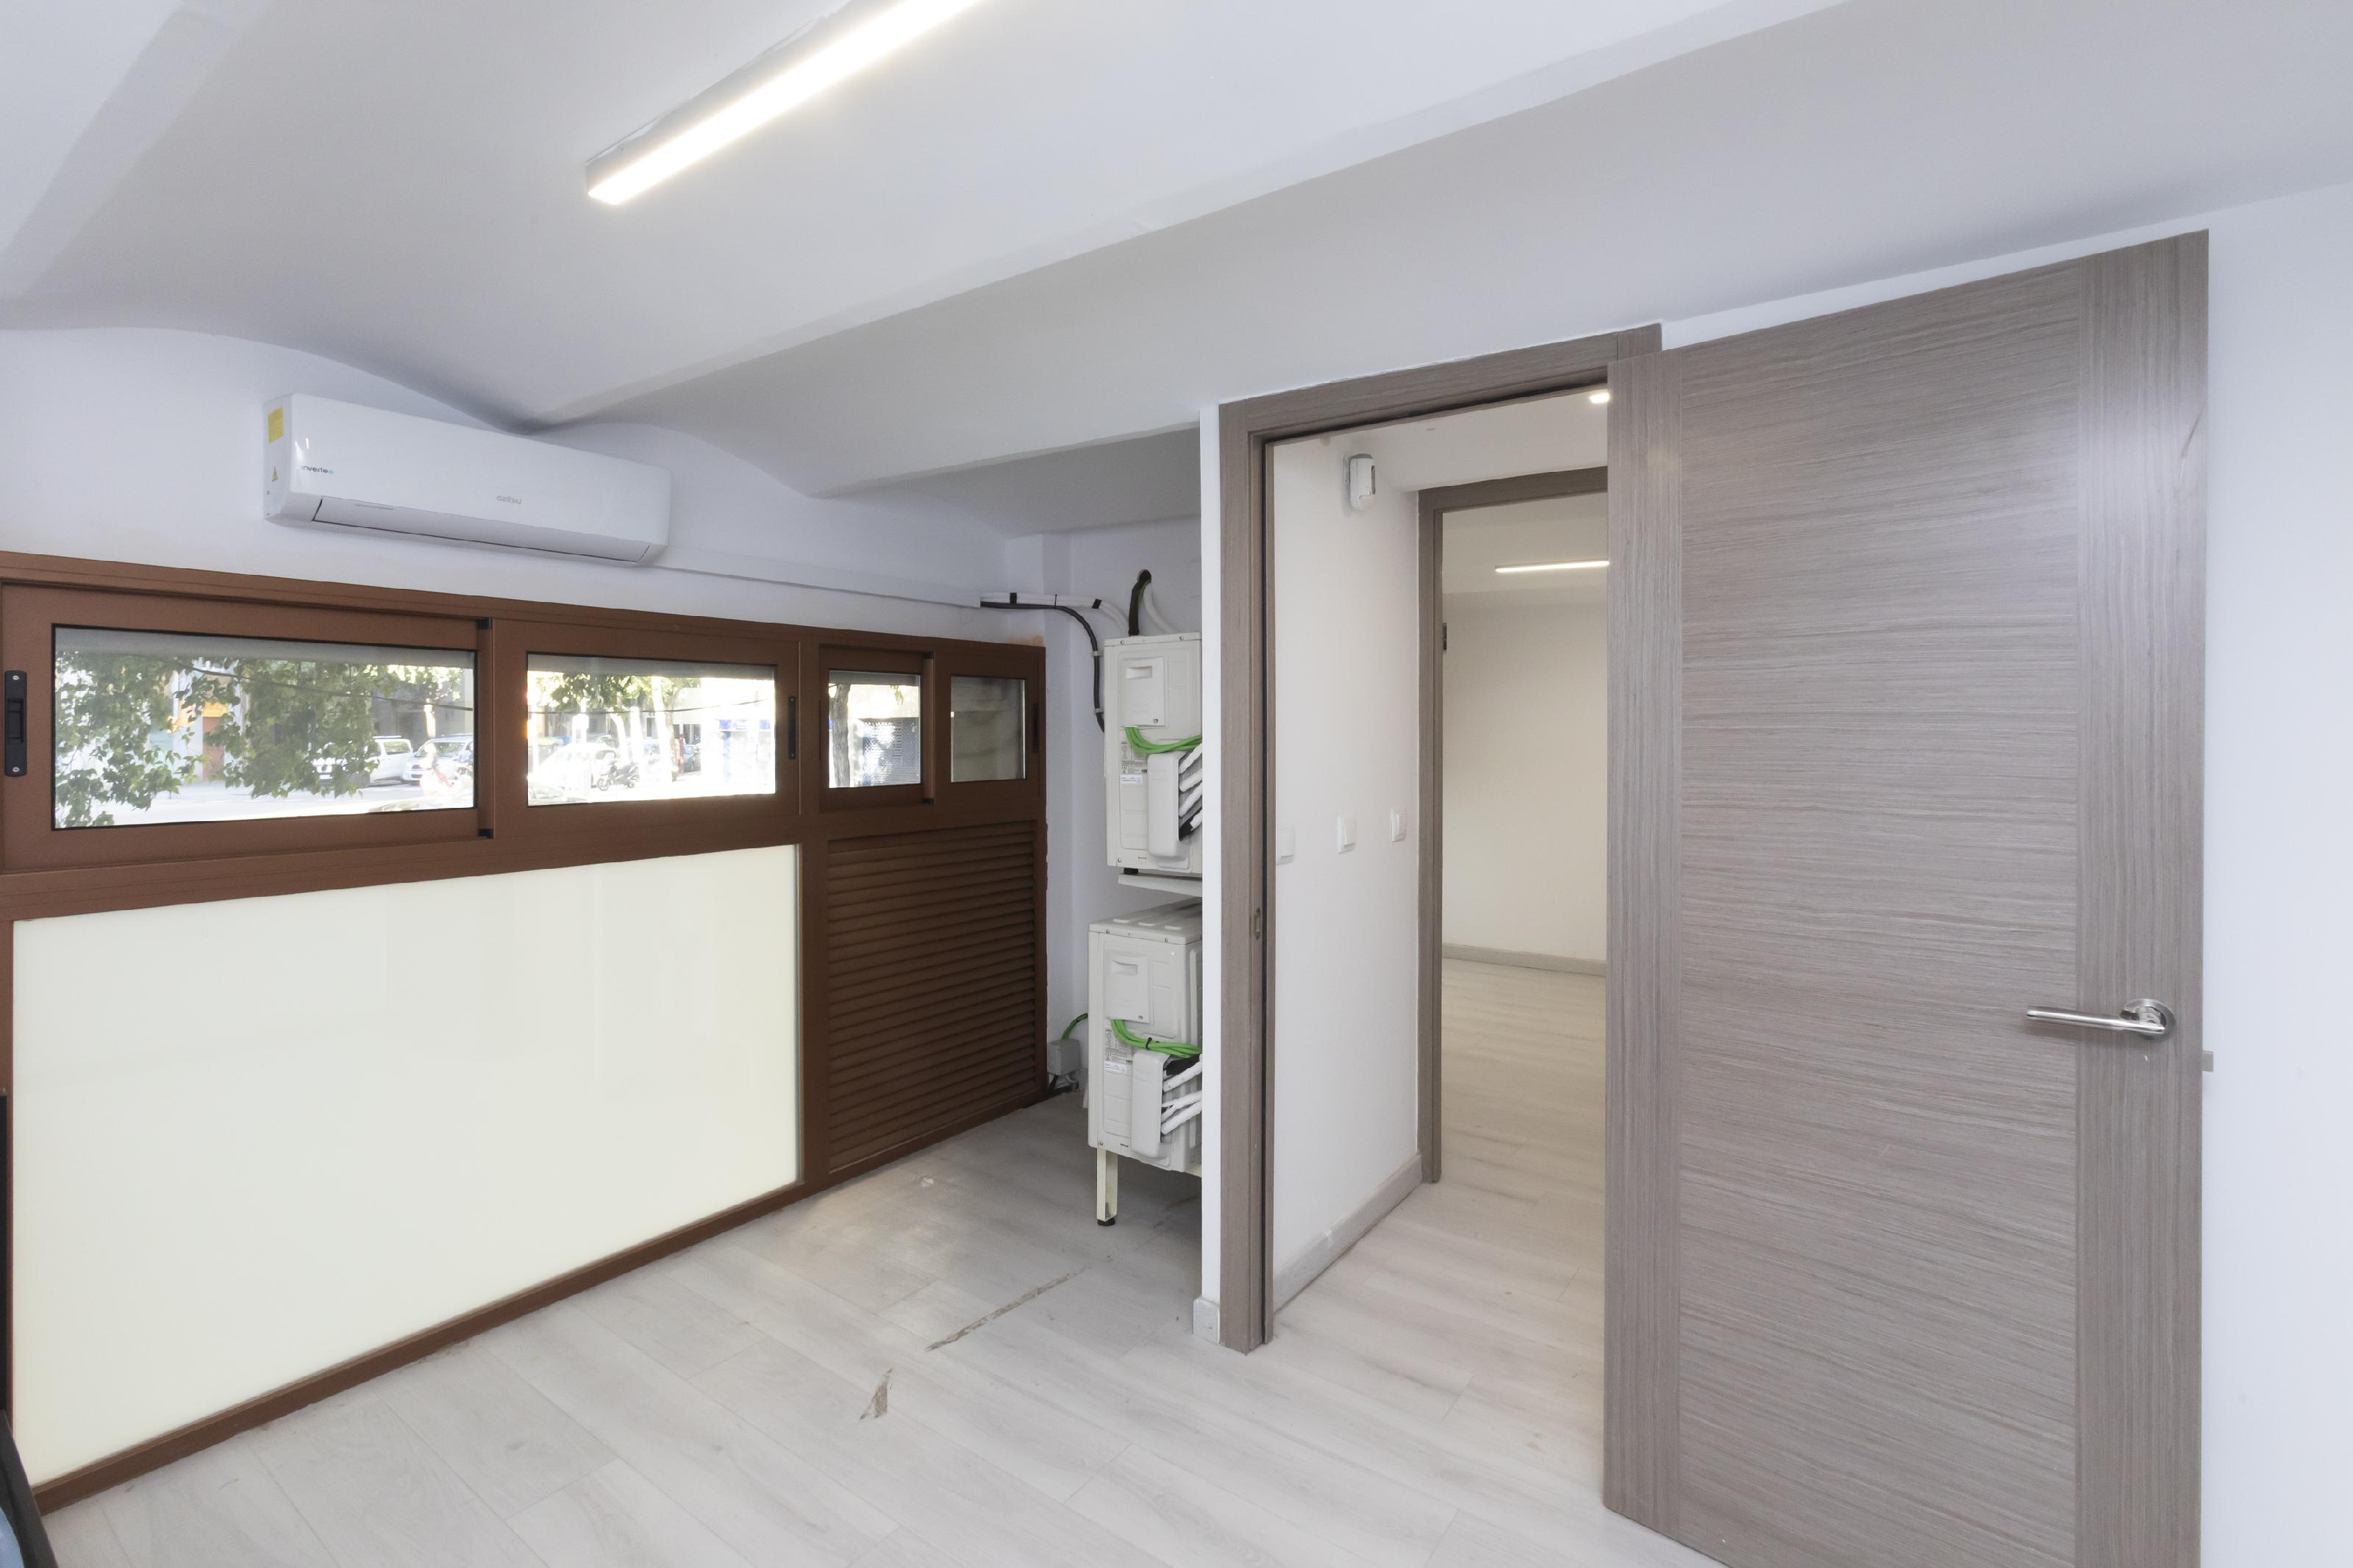 242978 Flat for sale in Gràcia, Camp Grassot and Gràcia Nova 14